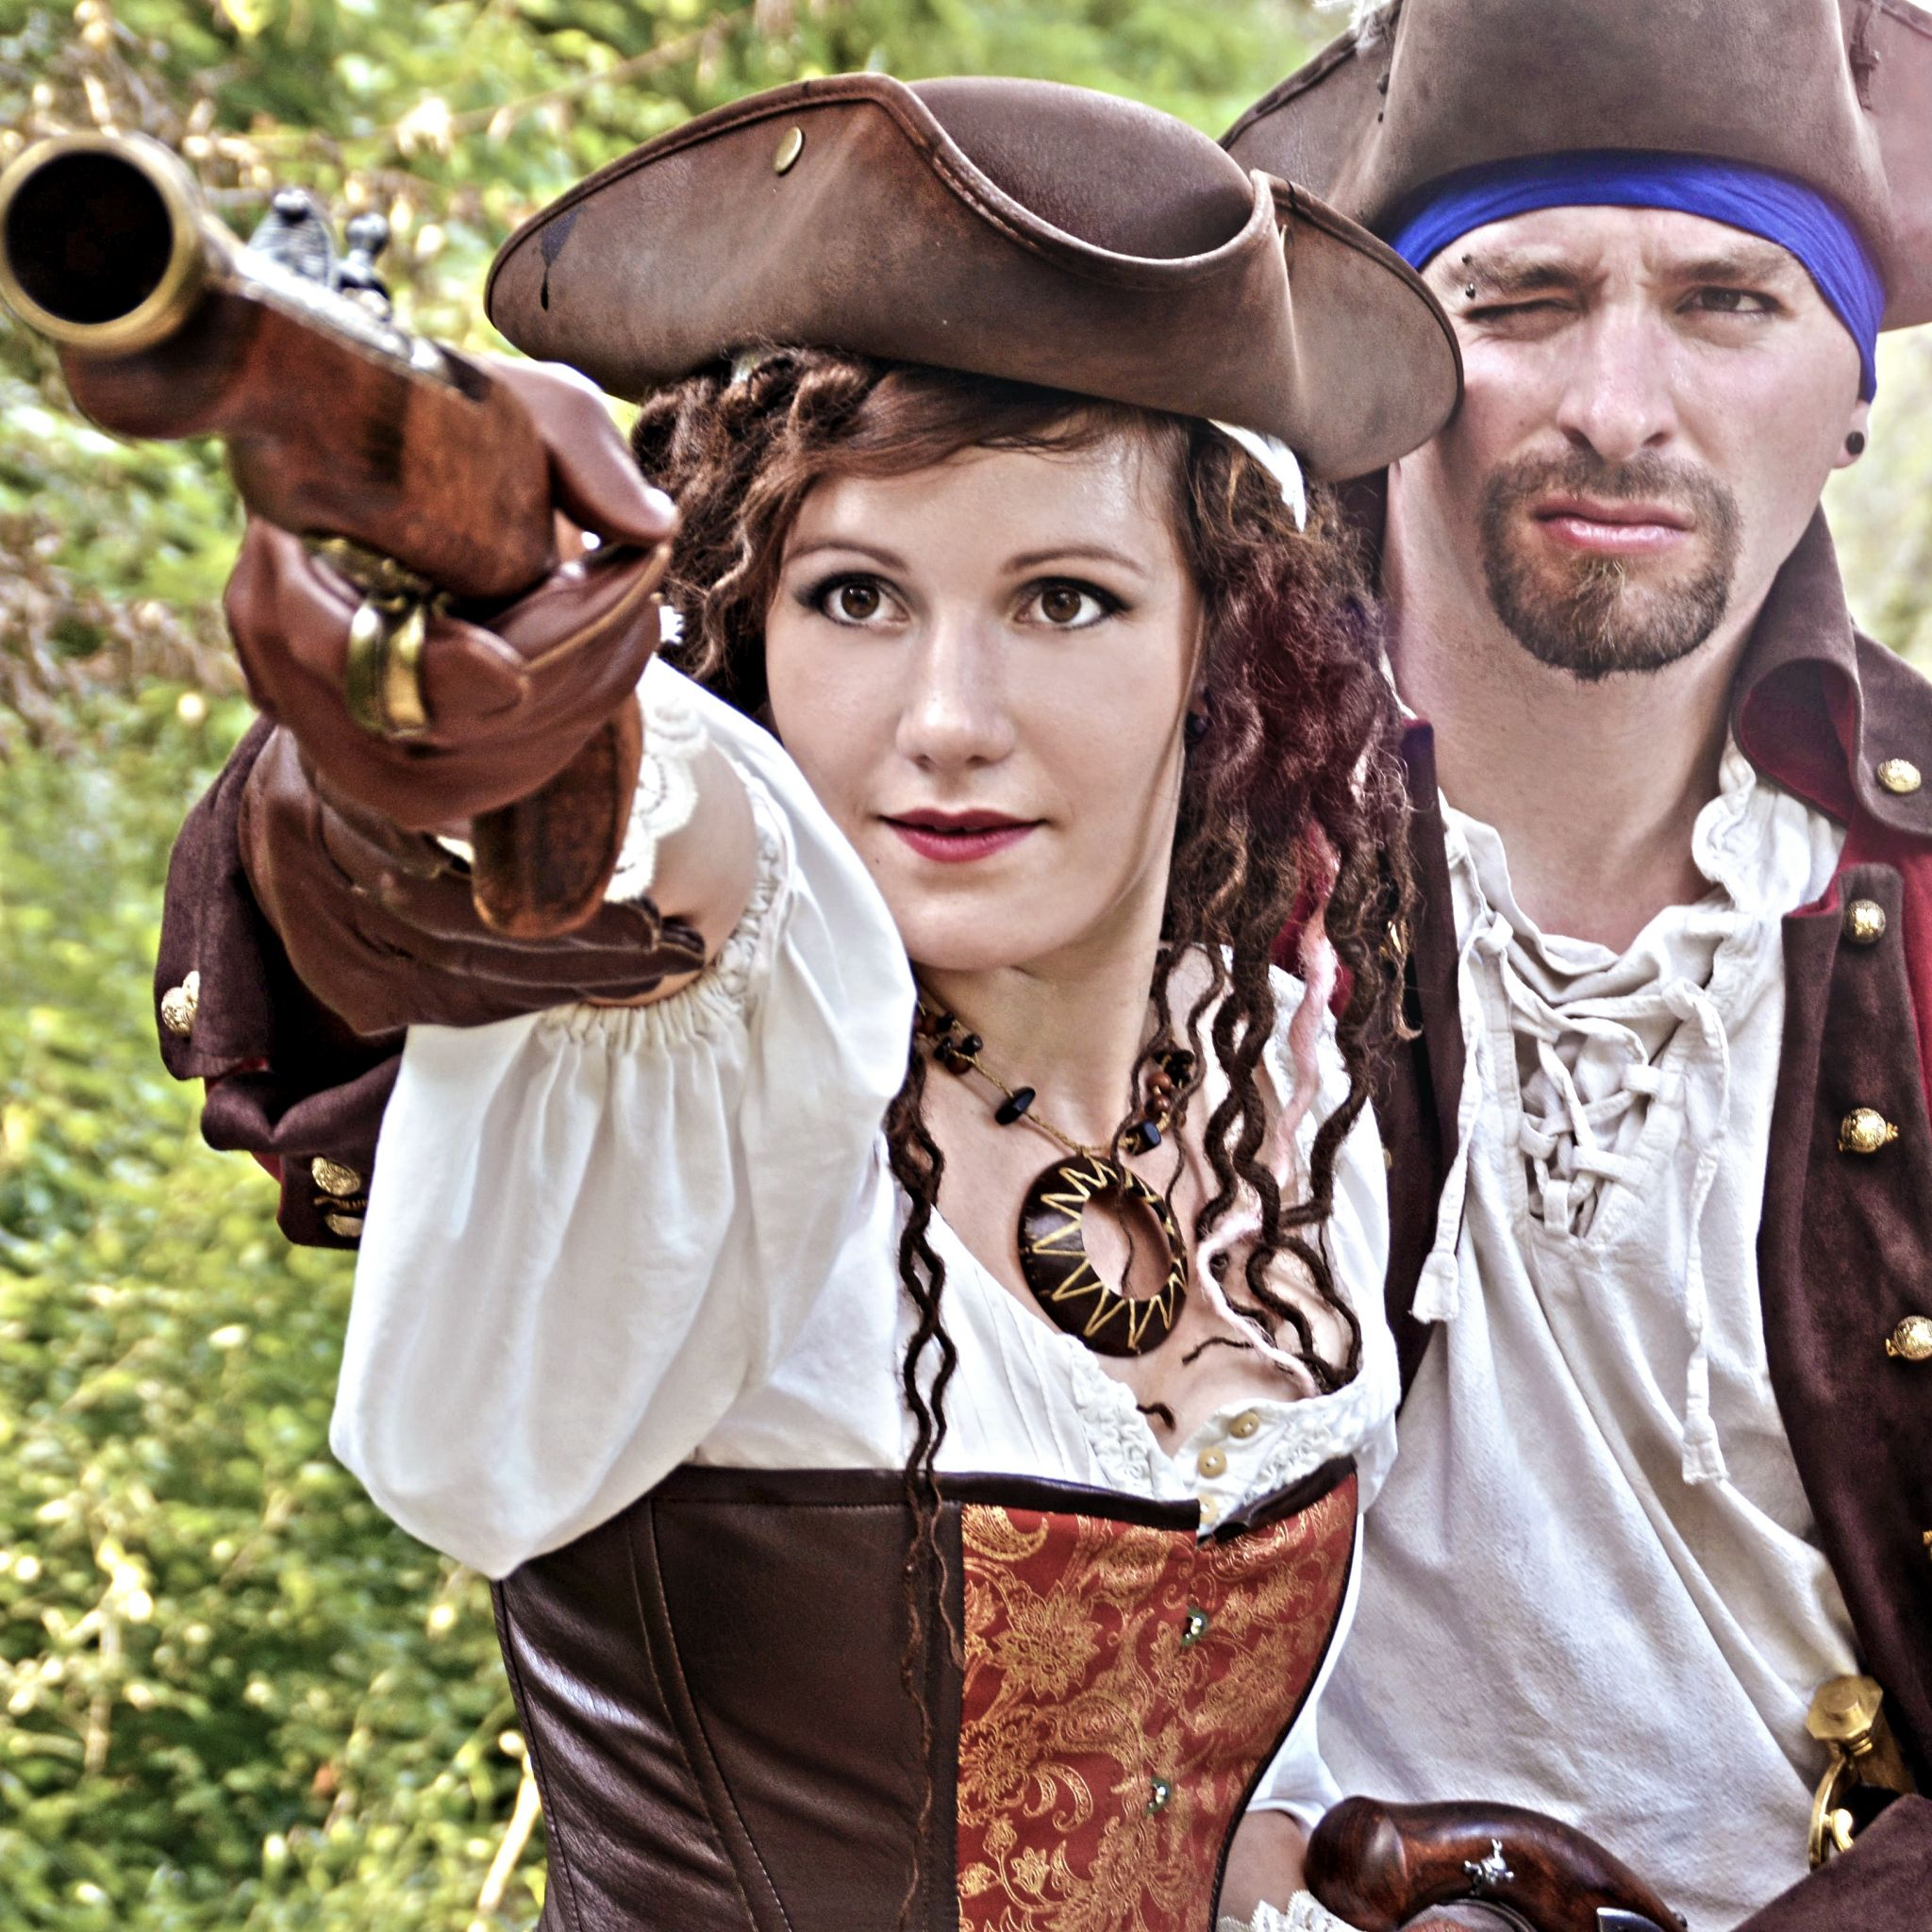 Couple Pirate